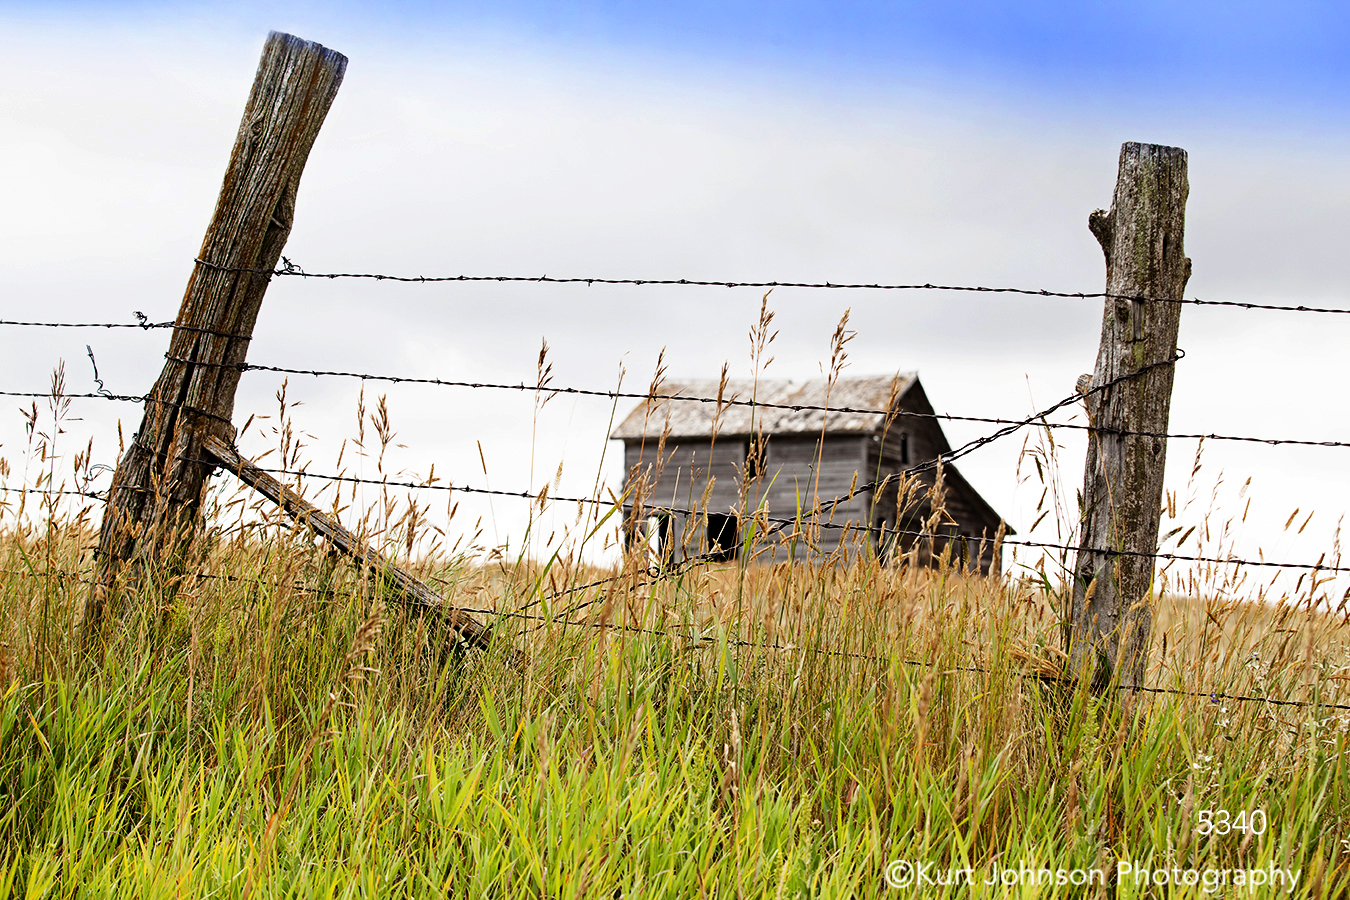 country field barn green grass wood midwest wire fence farm